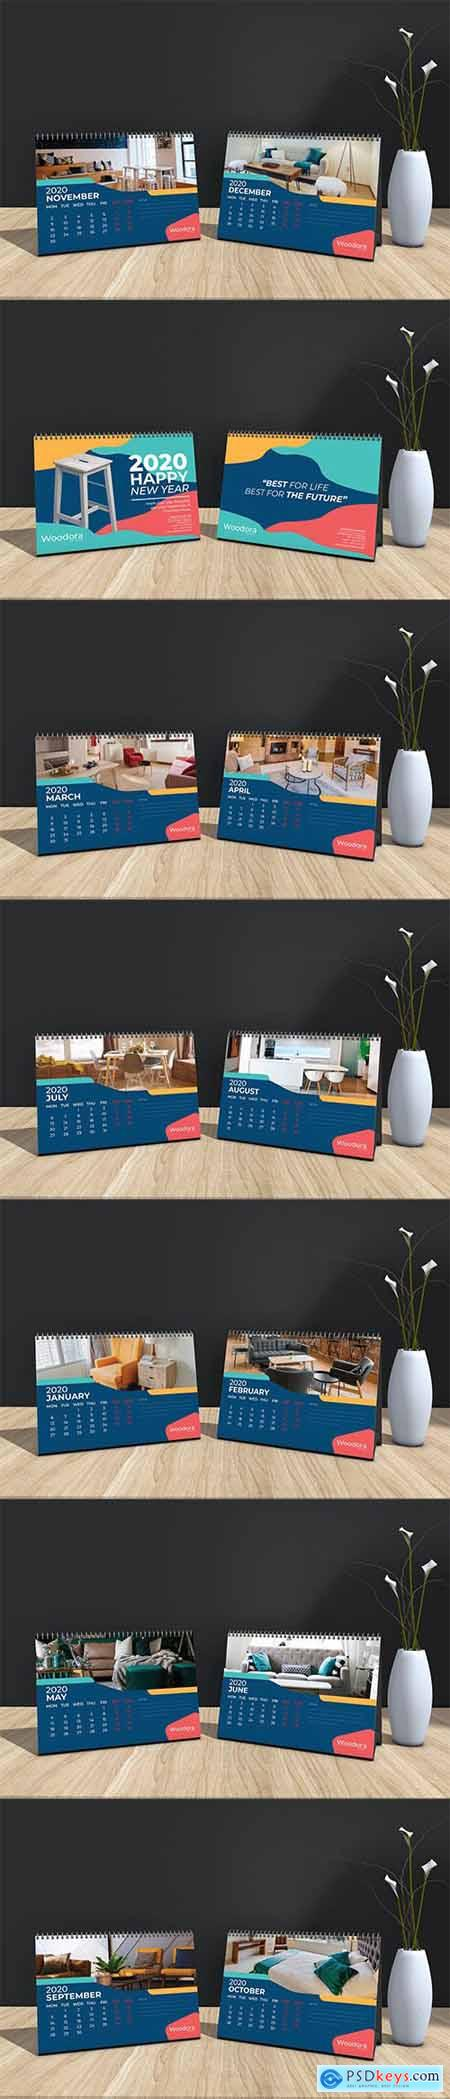 Woodora Furniture Table Calendar 2020